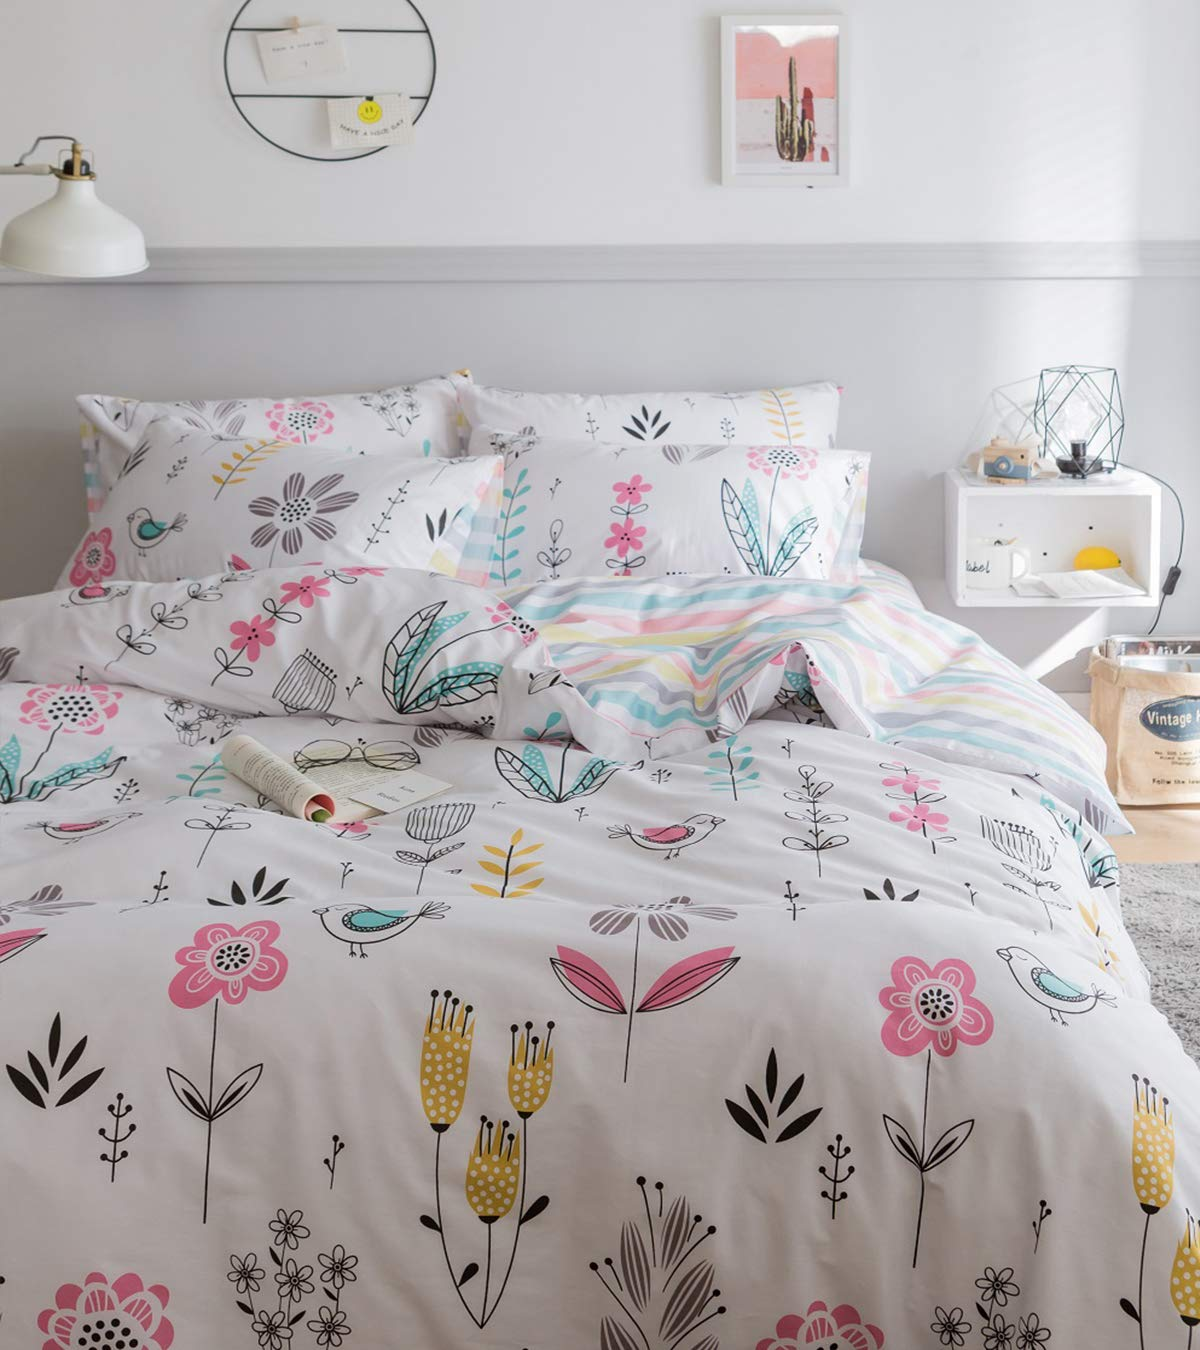 Jane yre Queen Floral Duvet Cover Set Cotton,Botanical Flower Branches Fresh Style Design,Girls Reversible Striped Bedding Set for All Season 3 Pieces with Zipper Closure 2 Pillow Shams(NO Comforter)